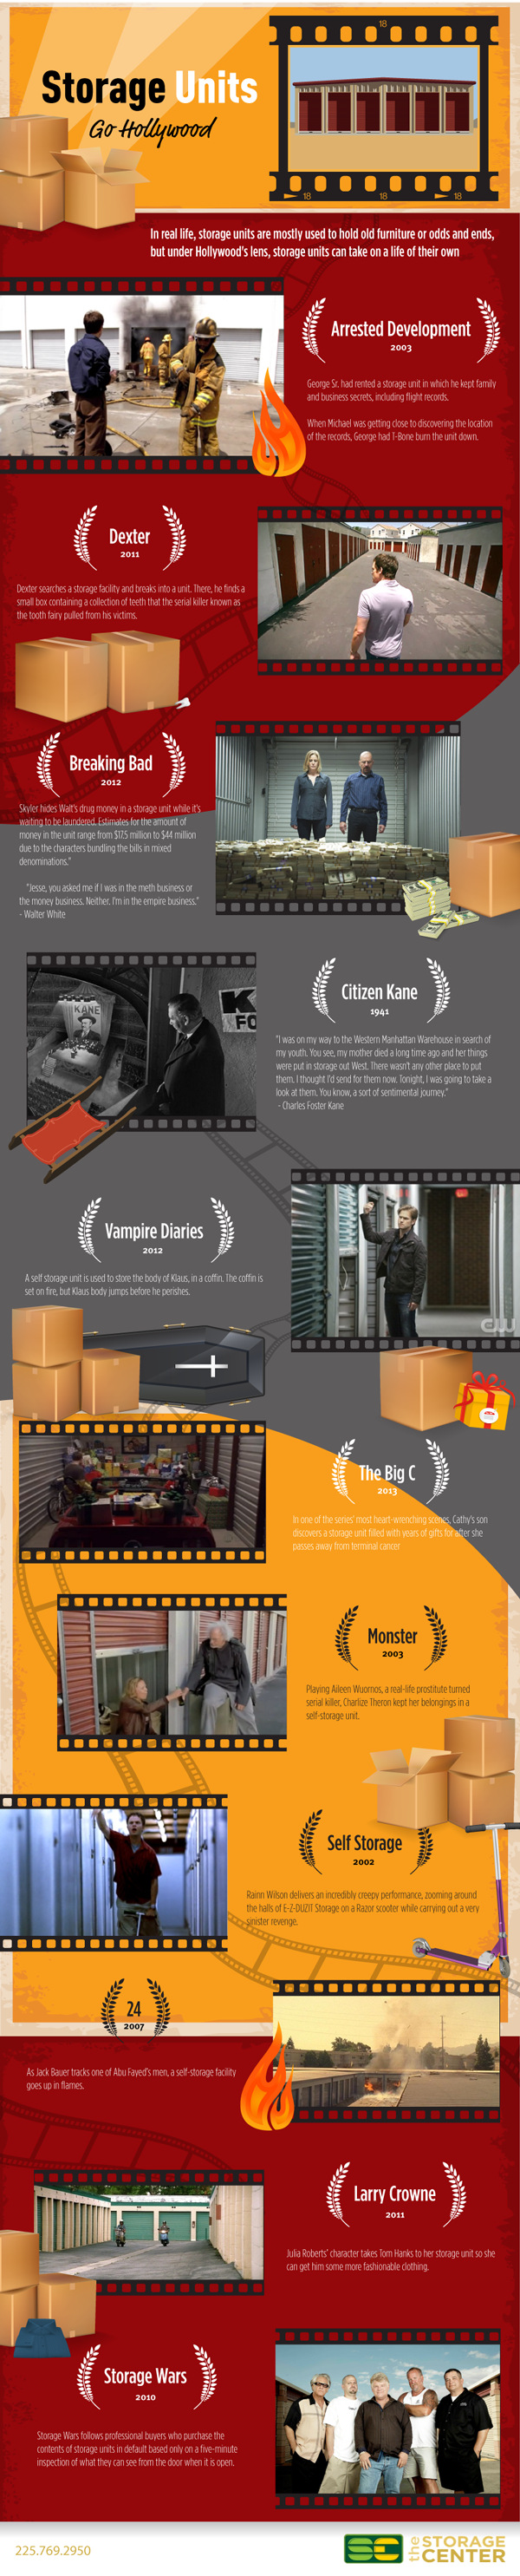 Self Storage Units In Hollywood Movies And Shows Self Storage The Unit Storage Unit